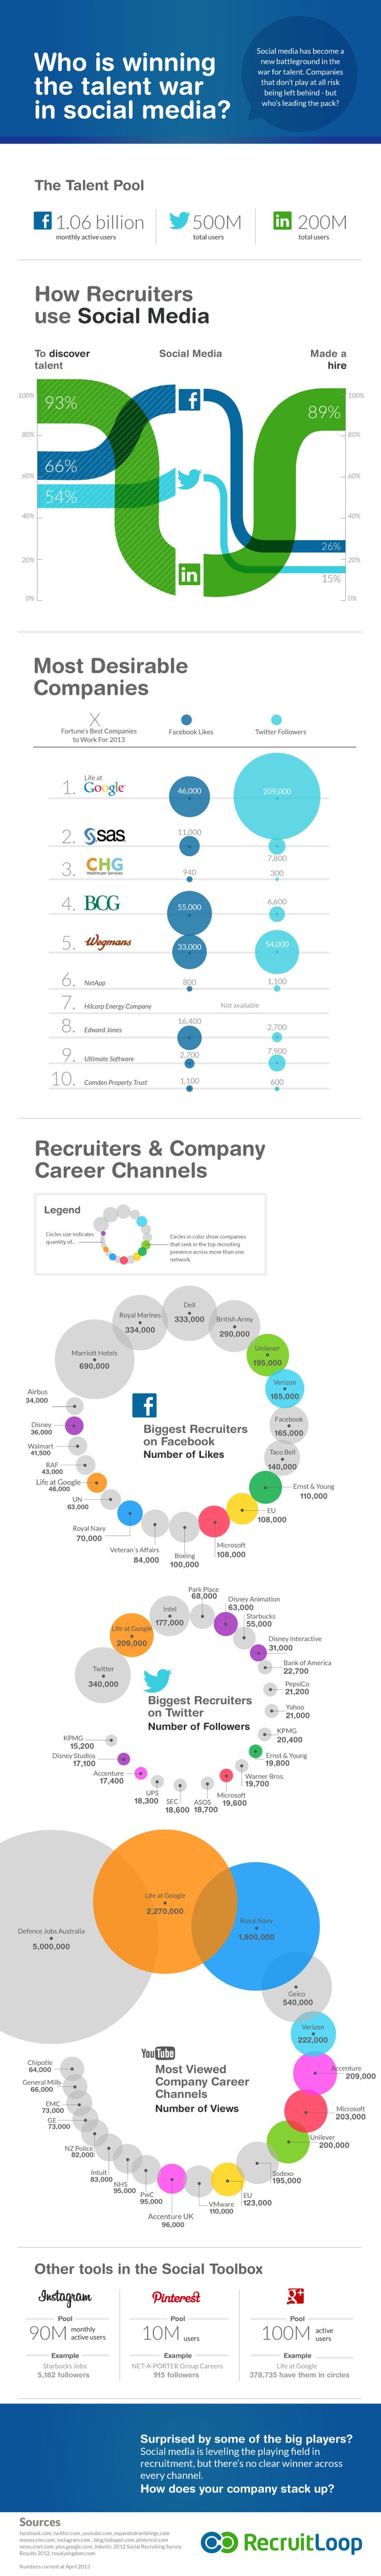 How Are Recruiters Using Social Media (And Who Is Winning The Talent War)? [INFOGRAPHIC]